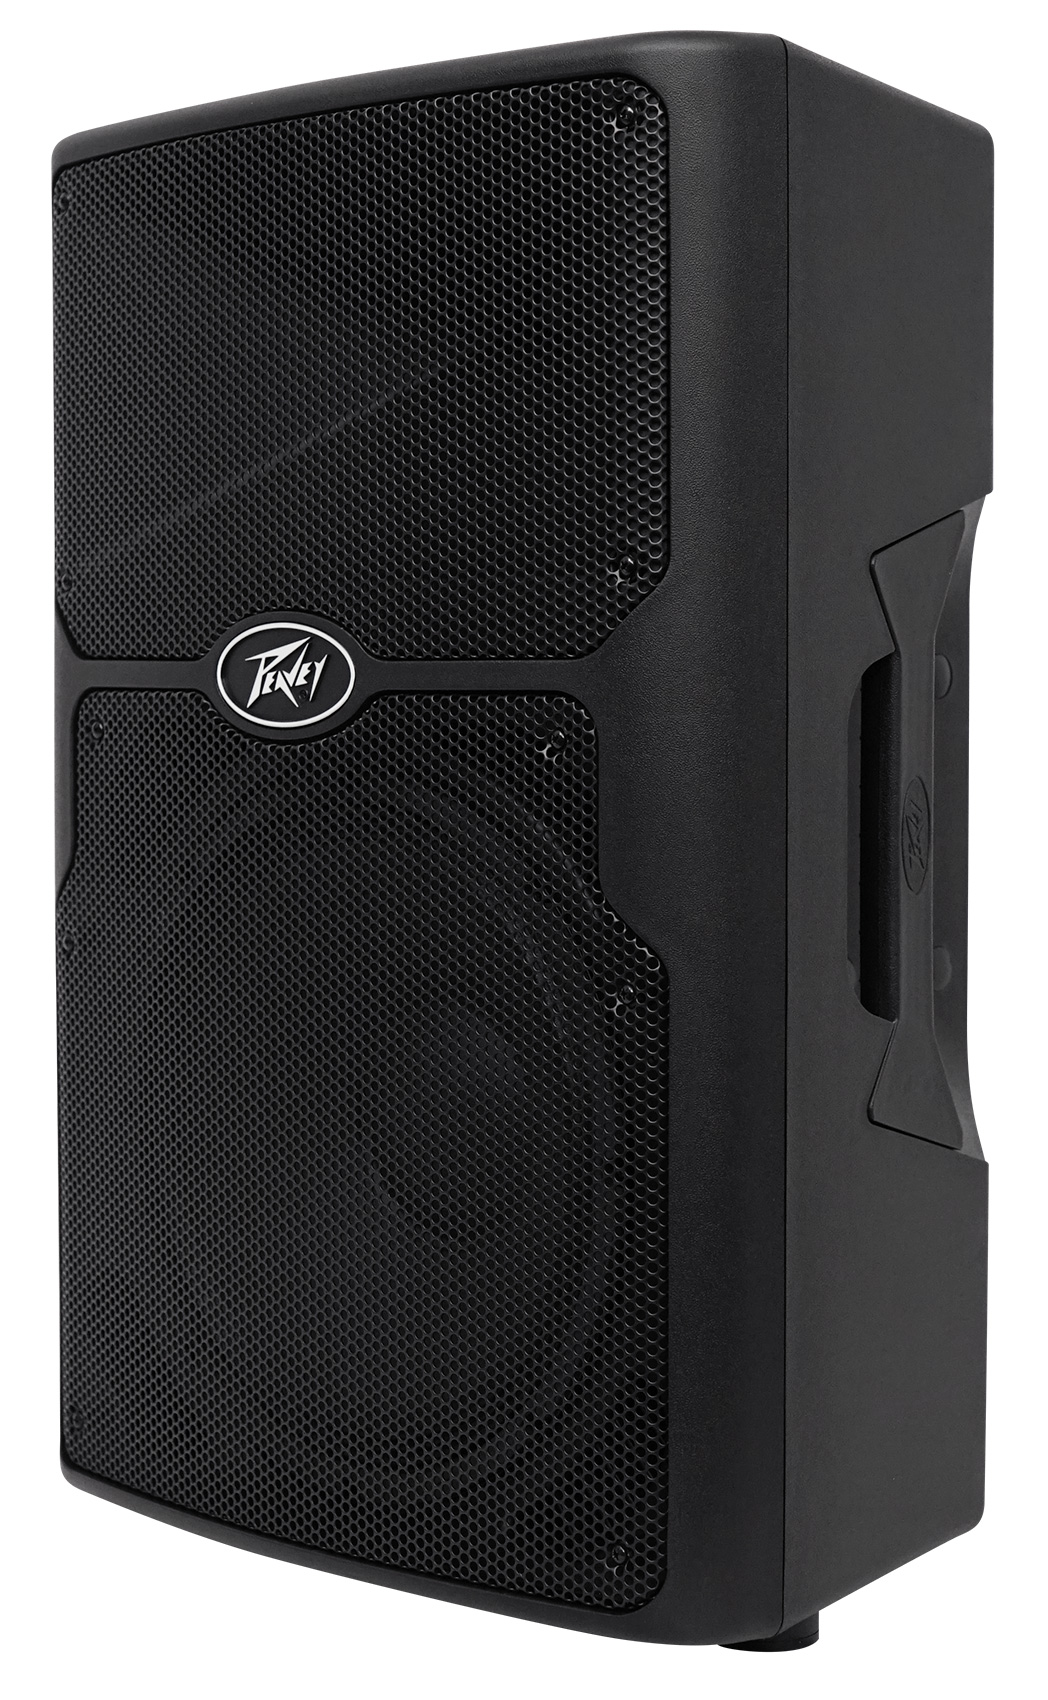 (2) Peavey PVXP12DSP 12 Powered Active DJ/PA Speakers w